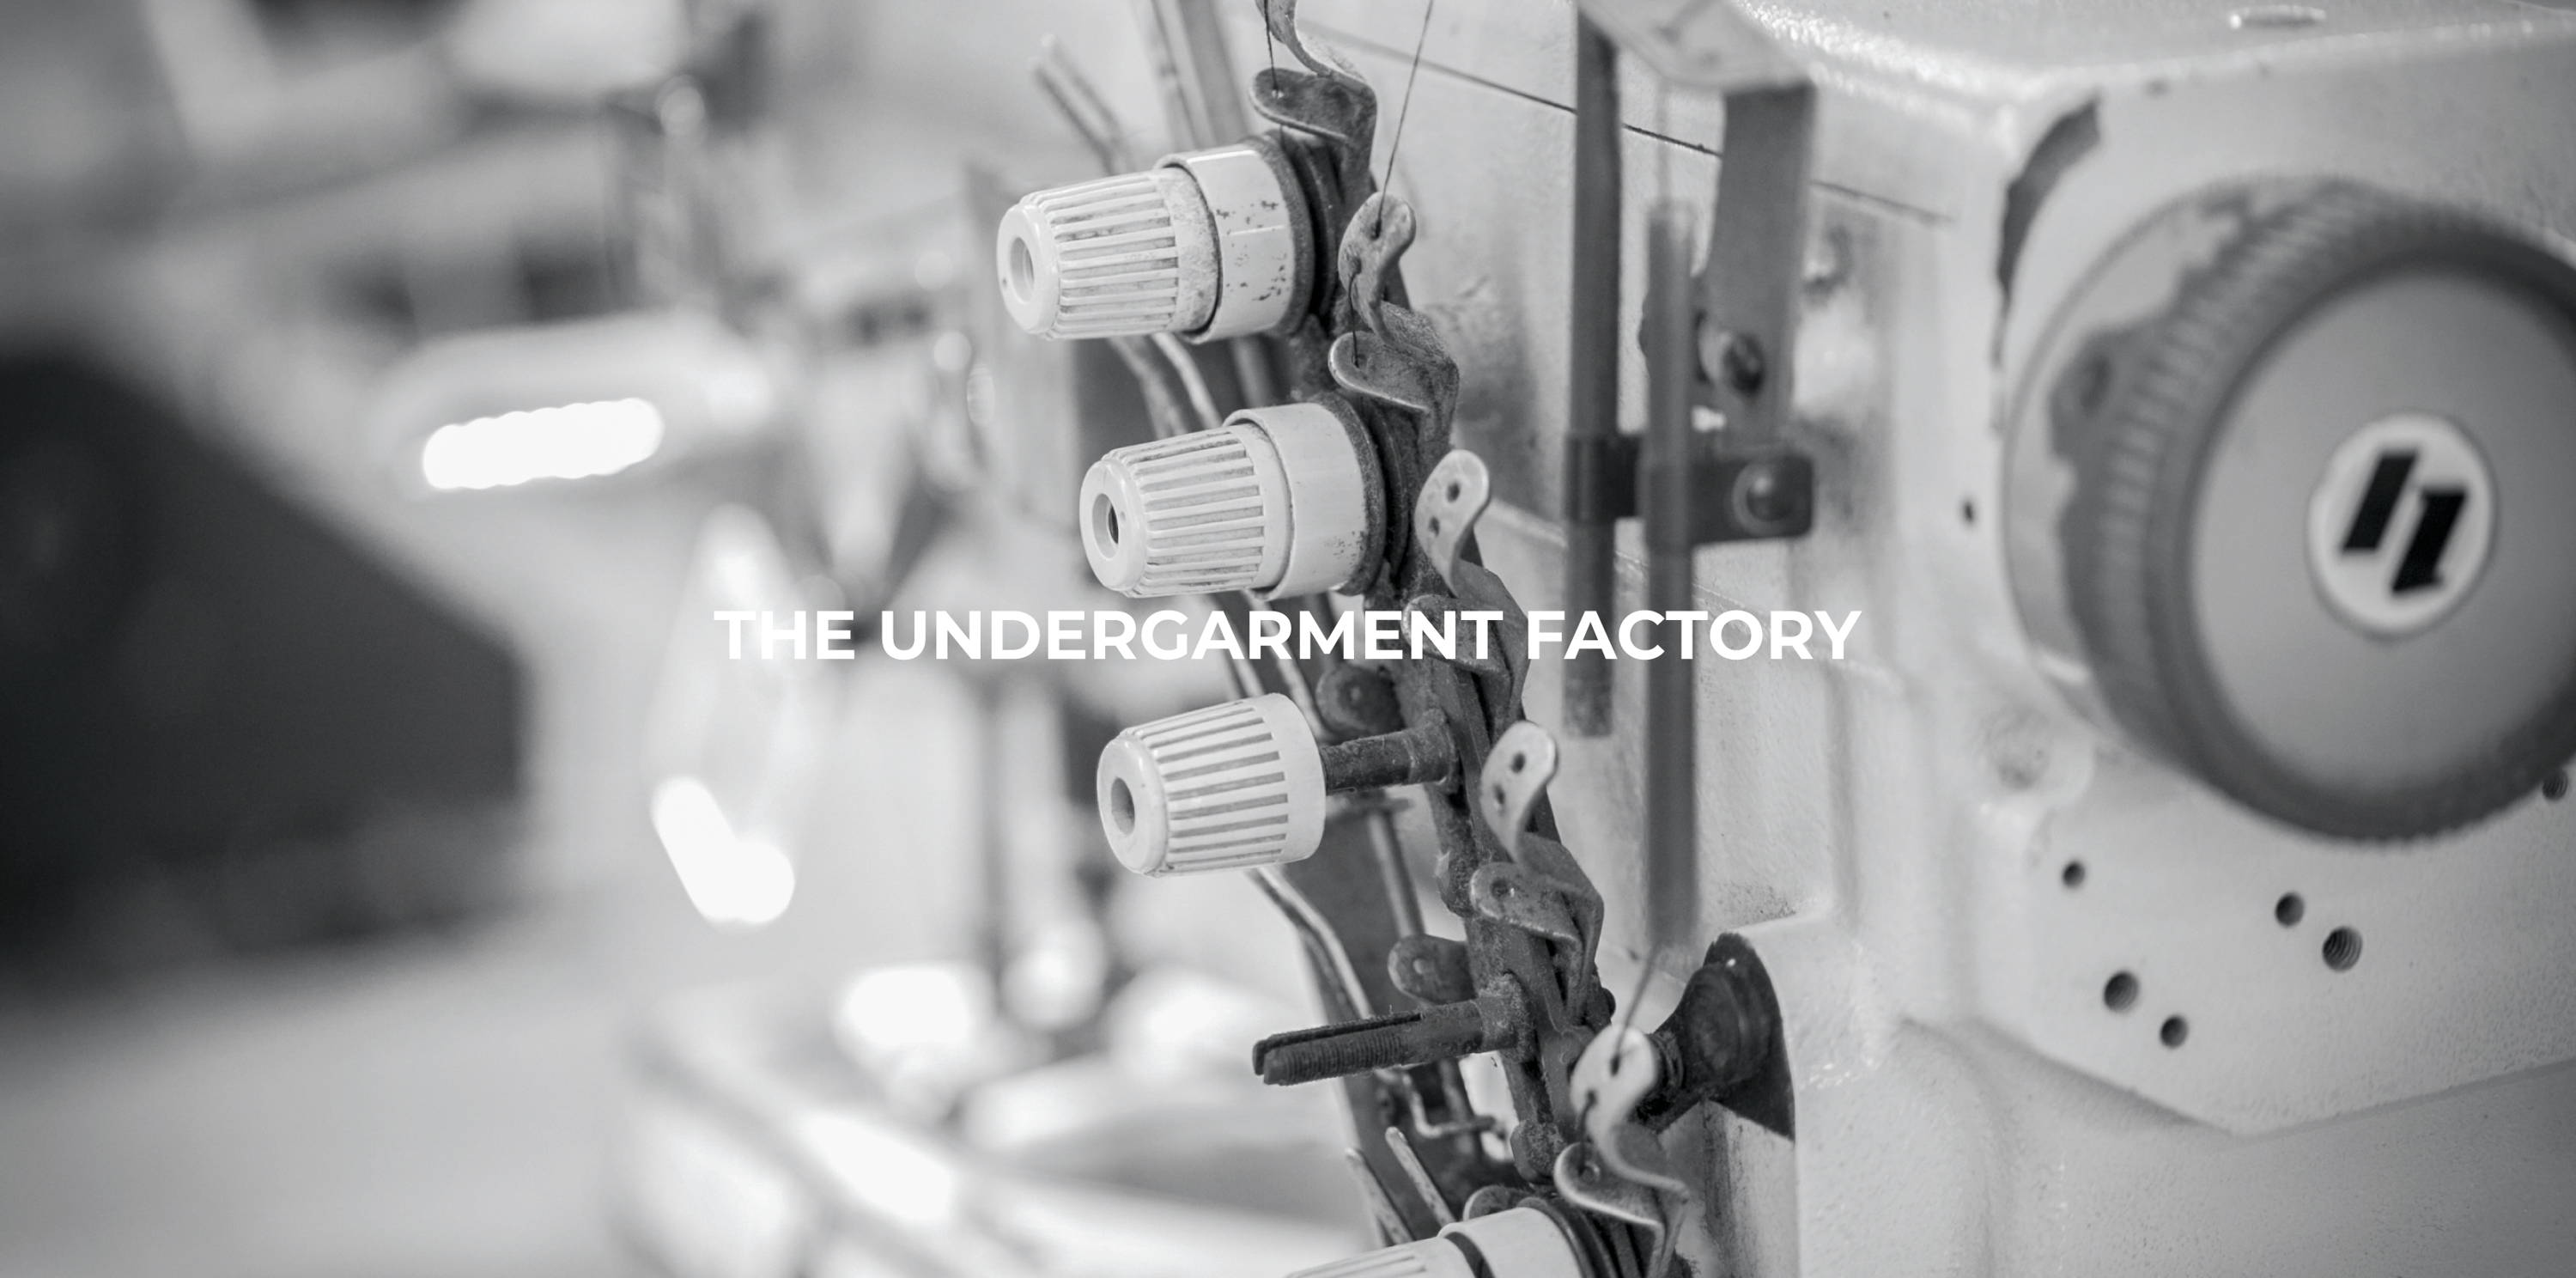 source underwear factory in china